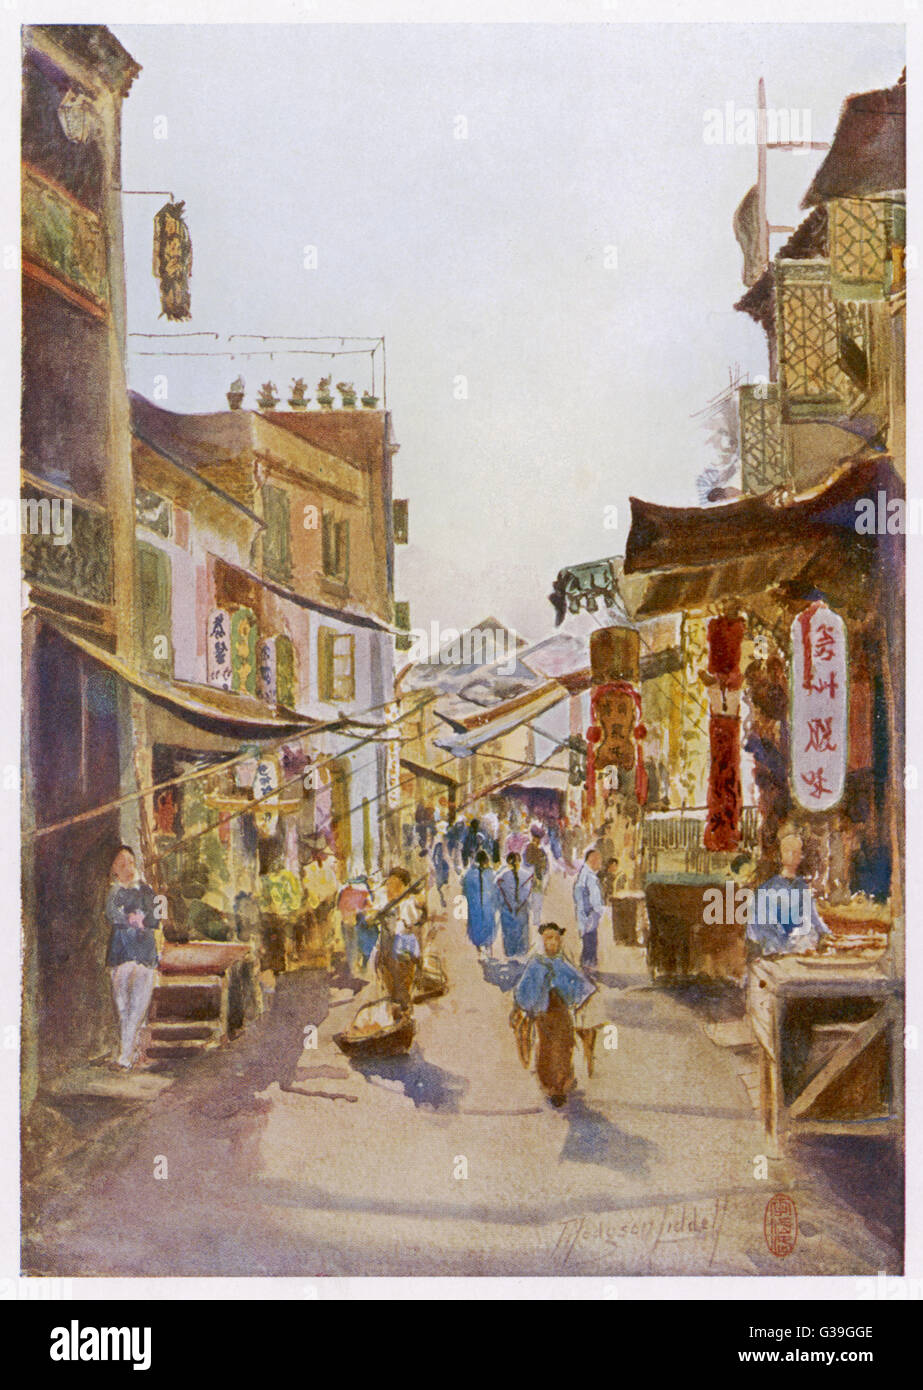 STREET SCENE with shops  and passers-by, awnings  and hanging signs       Date: 1909 - Stock Image